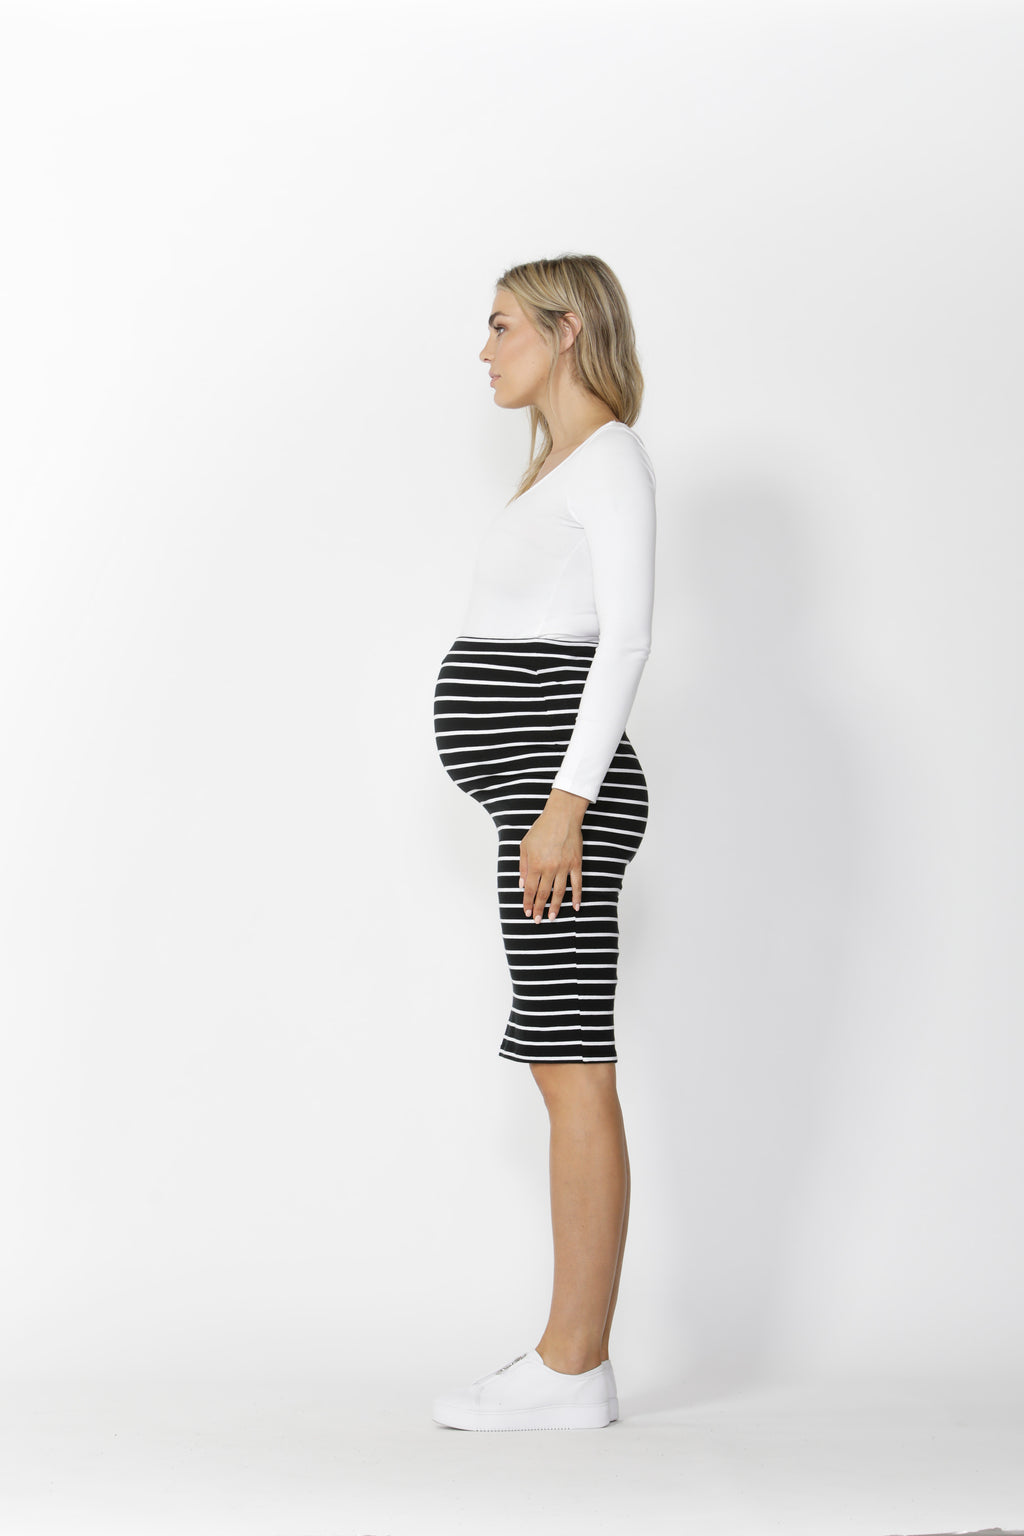 ALICIA MIDI SKIRT MATERNITY - Black/White Stripe